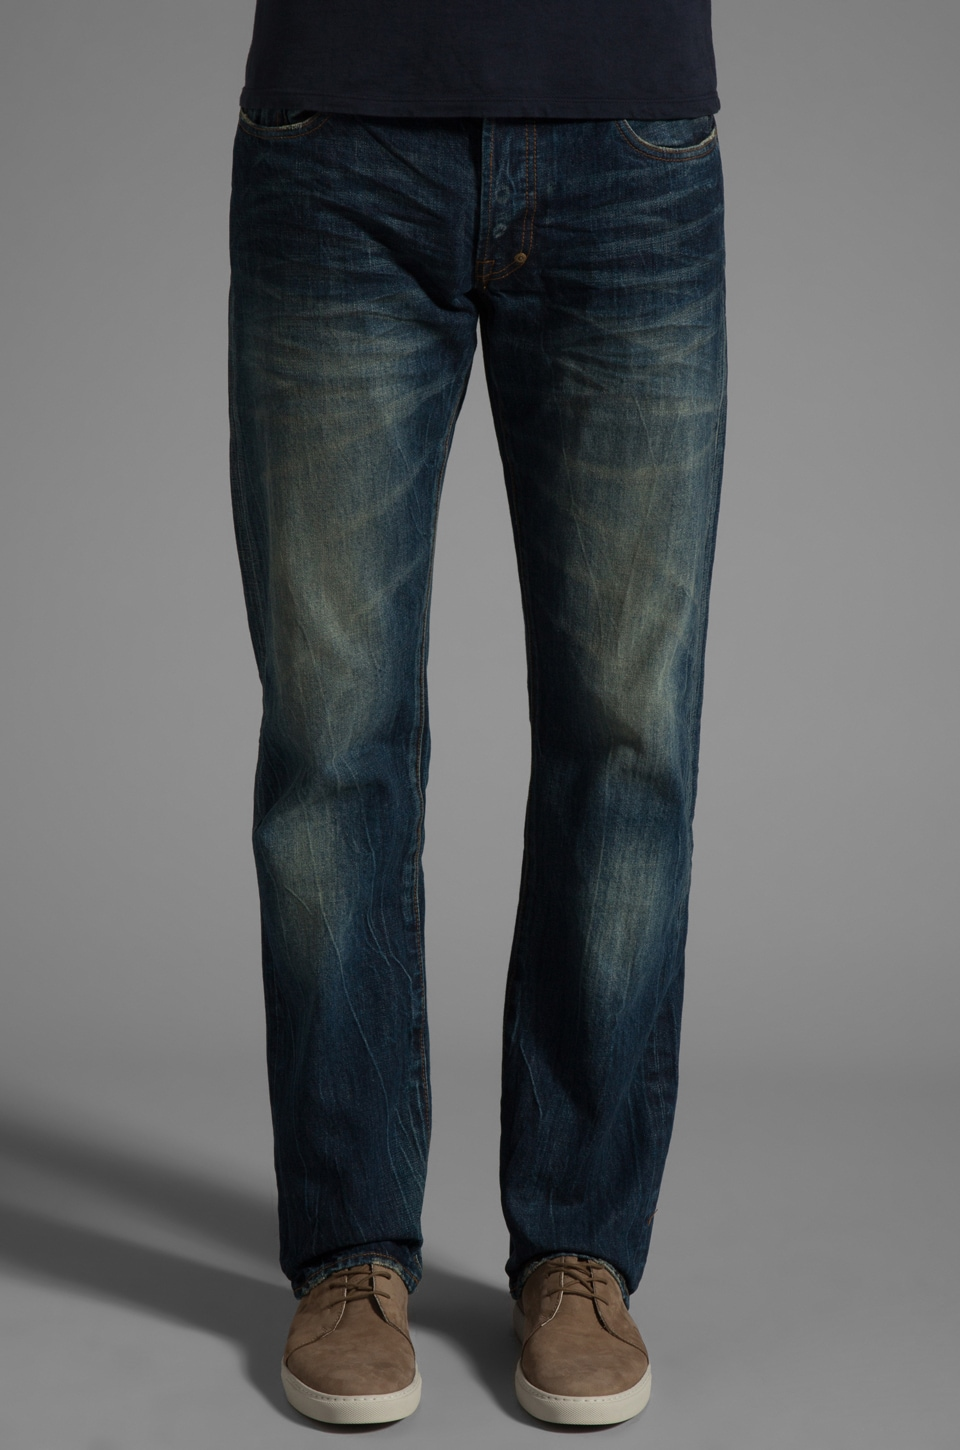 PRPS Goods & Co. Men's Woven Denim Jean in One Year Wash